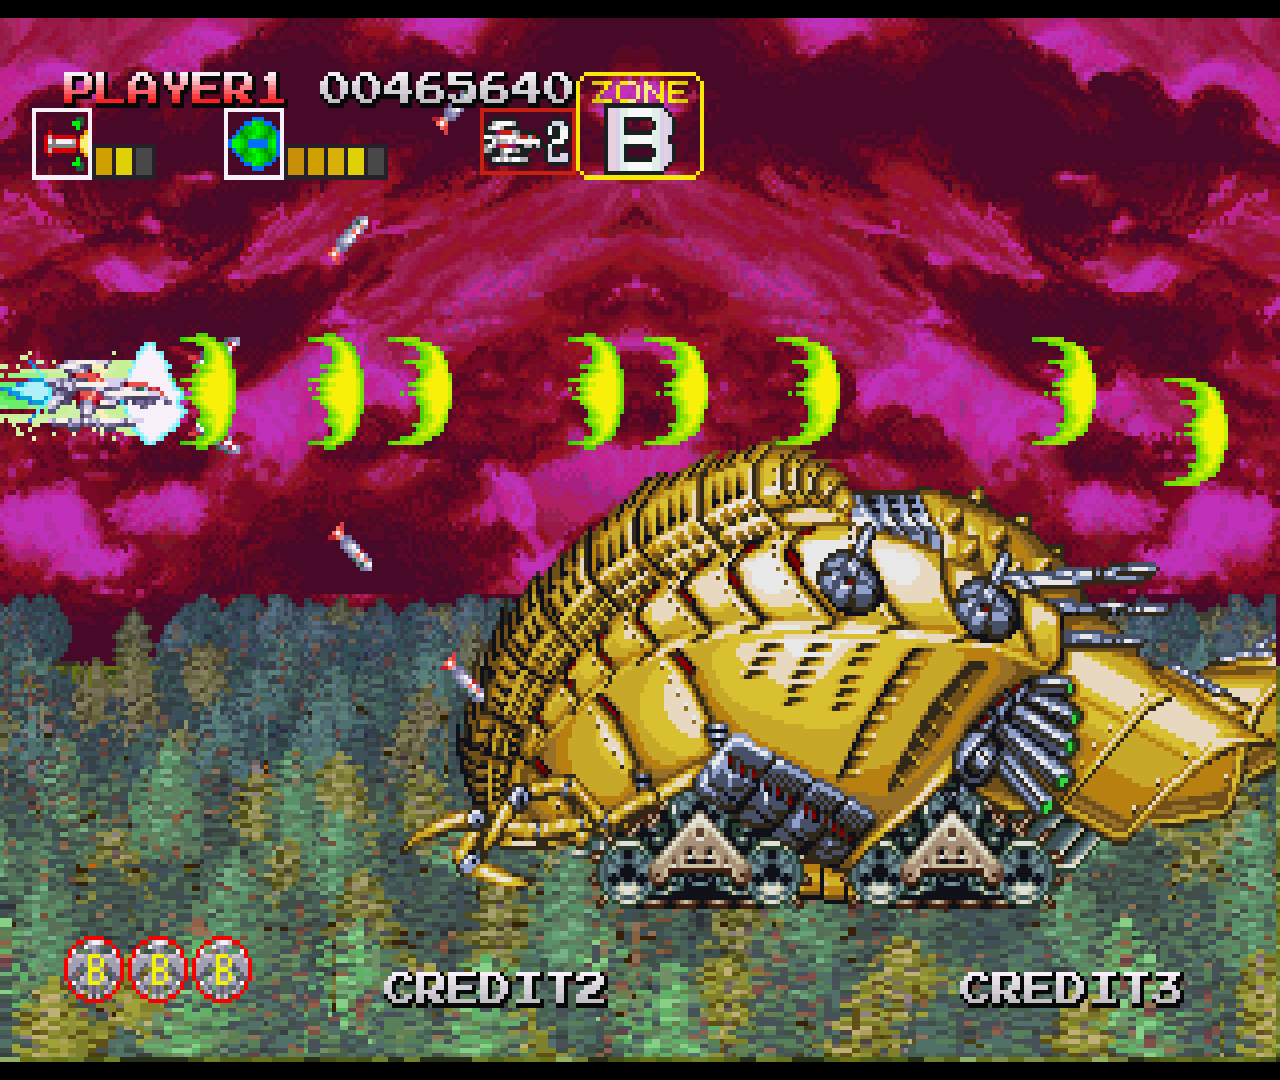 Figure 19 - Fighting the stage B boss with newly upgraded weapons